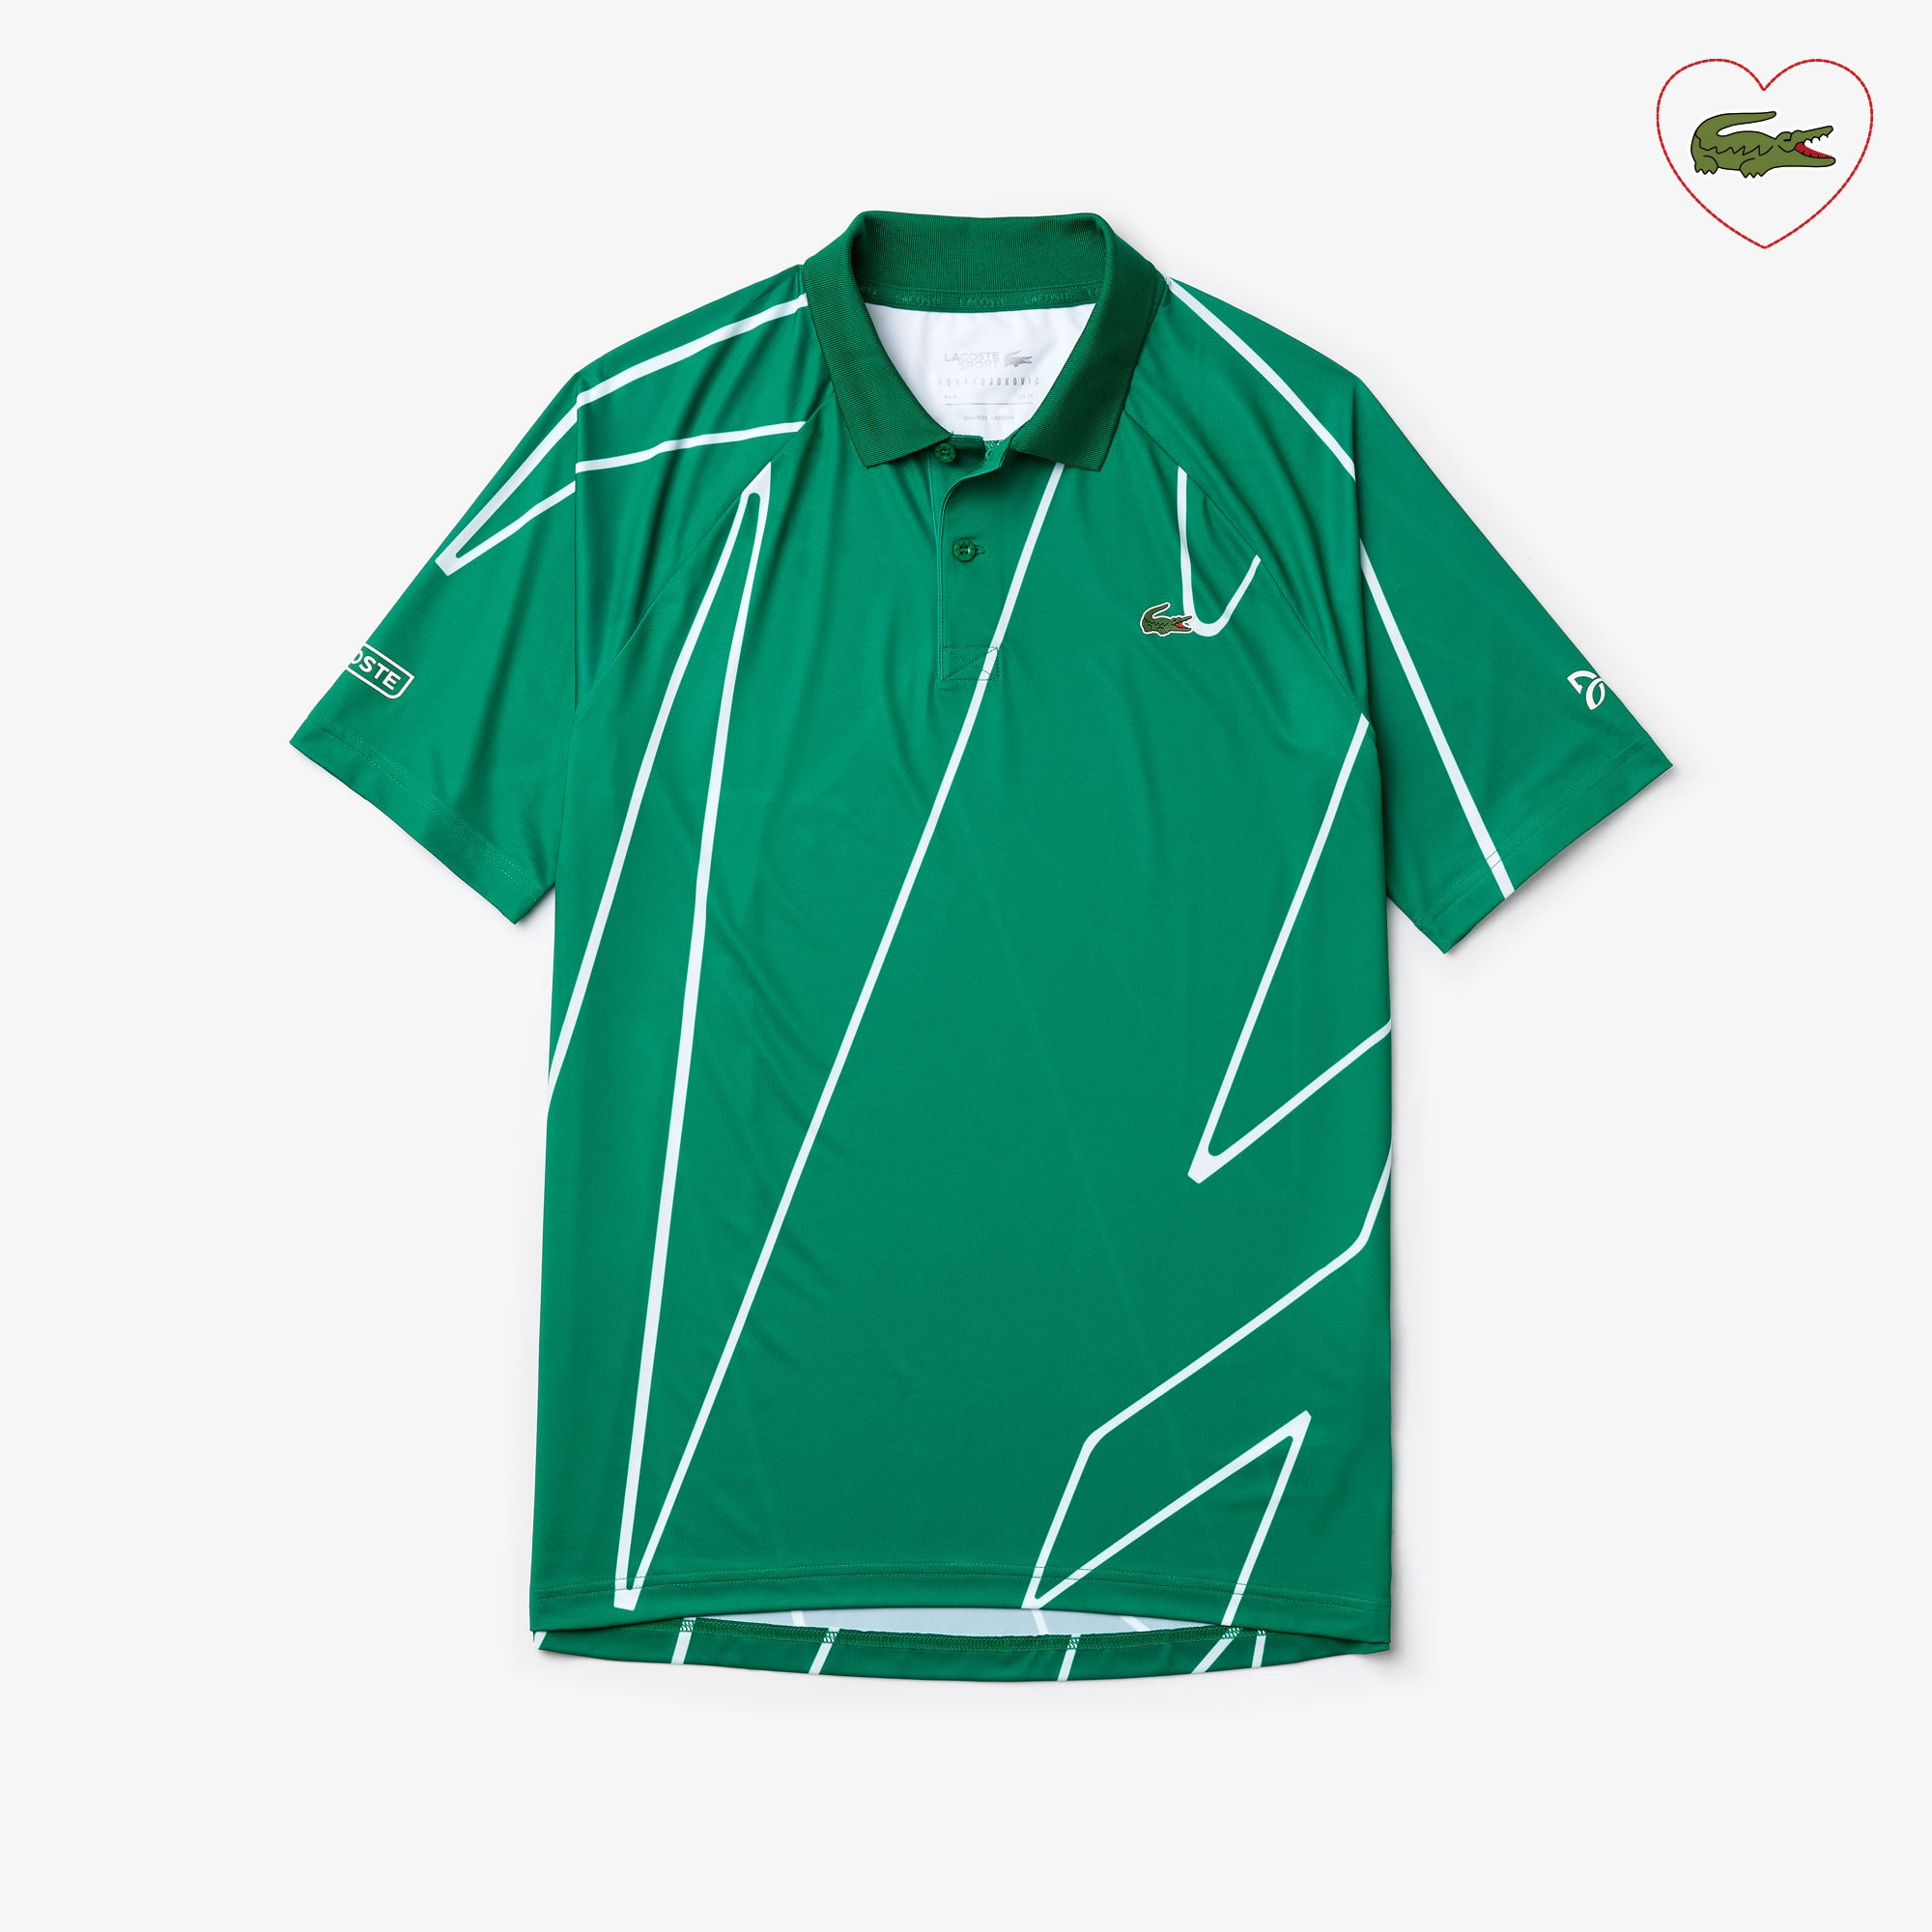 Men's Lacoste SPORT x Novak Djokovic Printed Breathable Polo Shirt